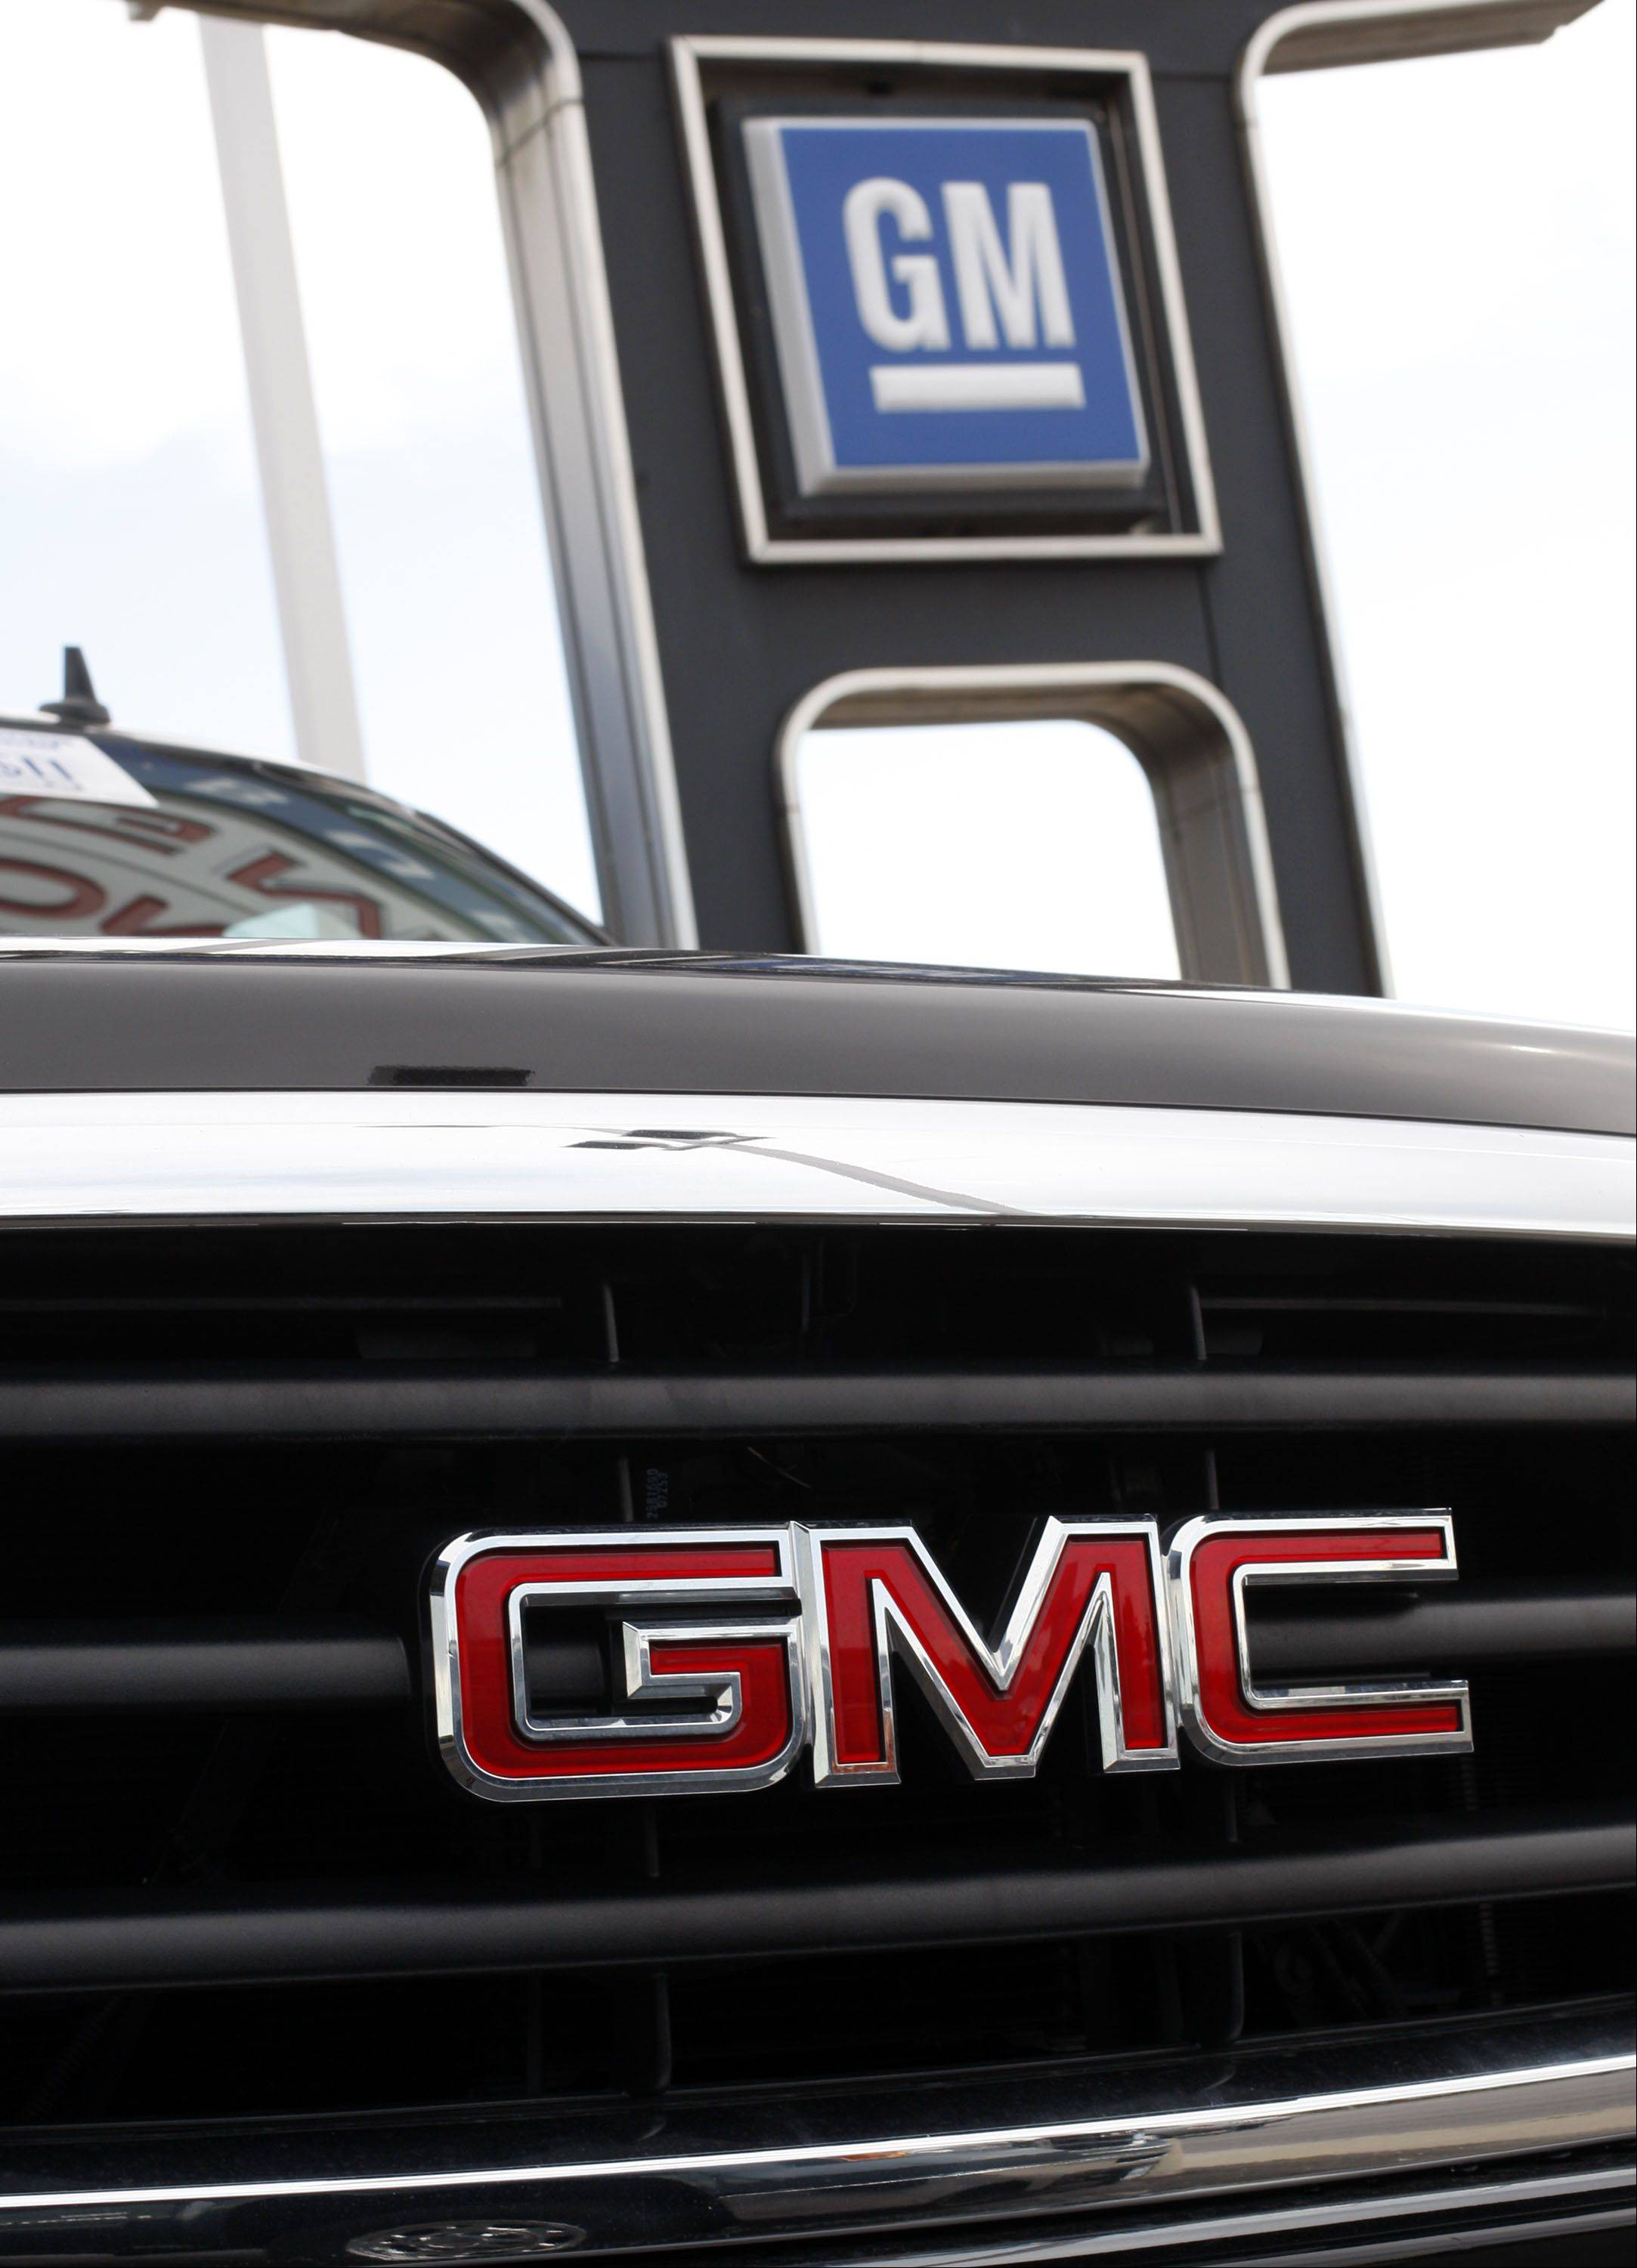 A profitable General Motors Co. is poised to shake off a half decade of U.S. government oversight next month, underscoring the comeback of a once-moribund industry and gaining leeway over a $26.8 billion cash pile that it can use to lure talent while weighing a dividend.